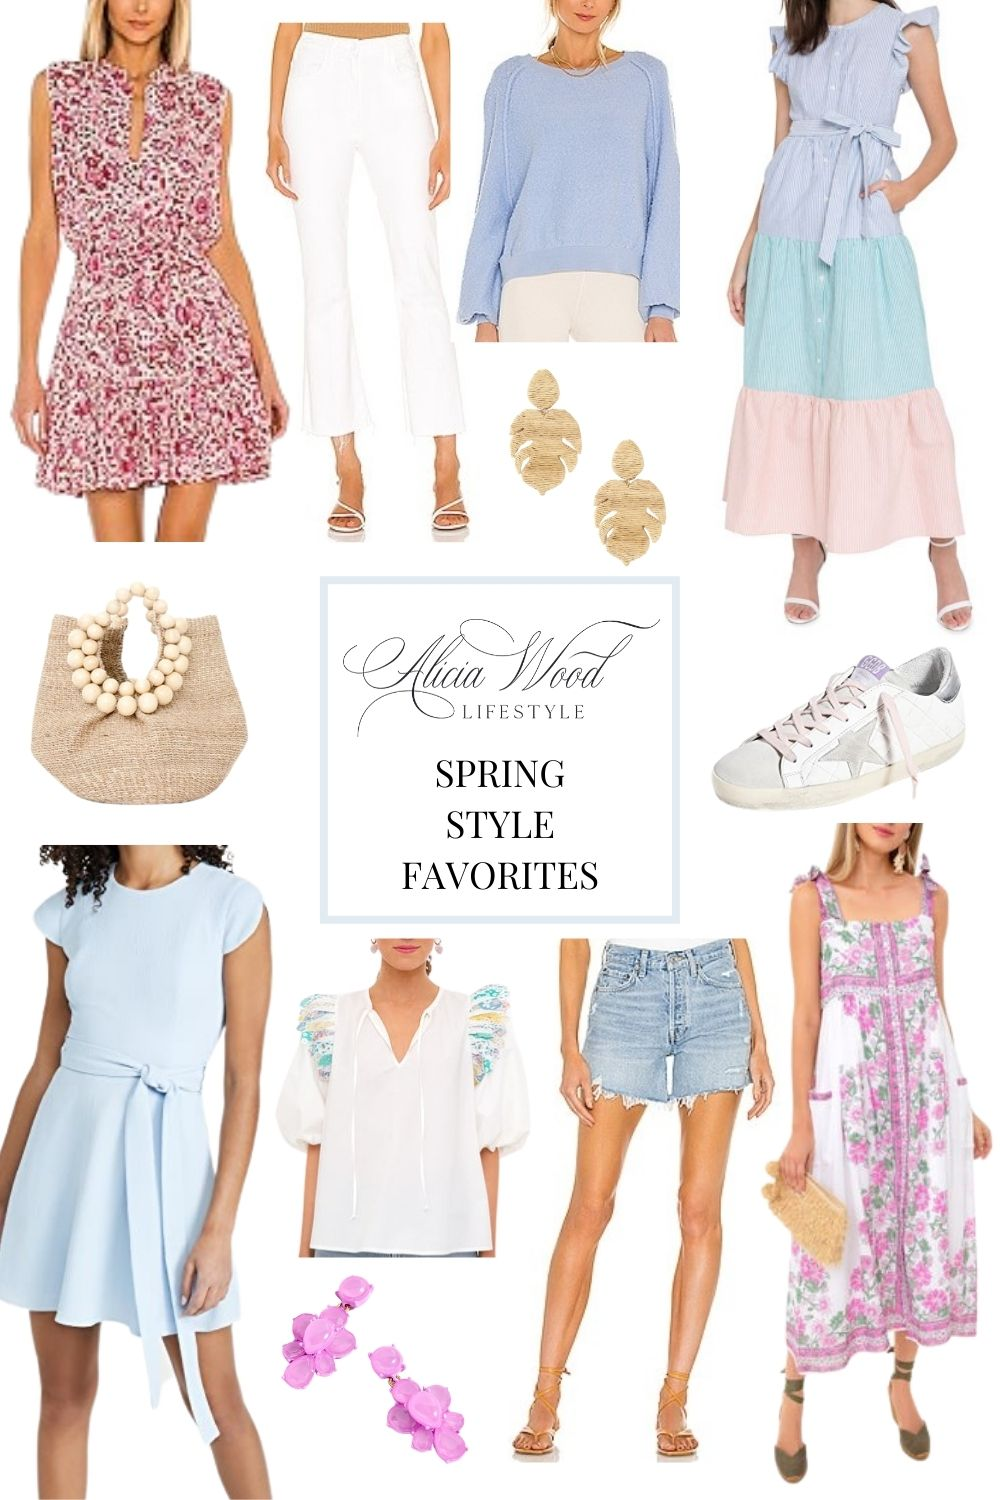 AWL Spring Style Shop: Five Spring Trends for 2021